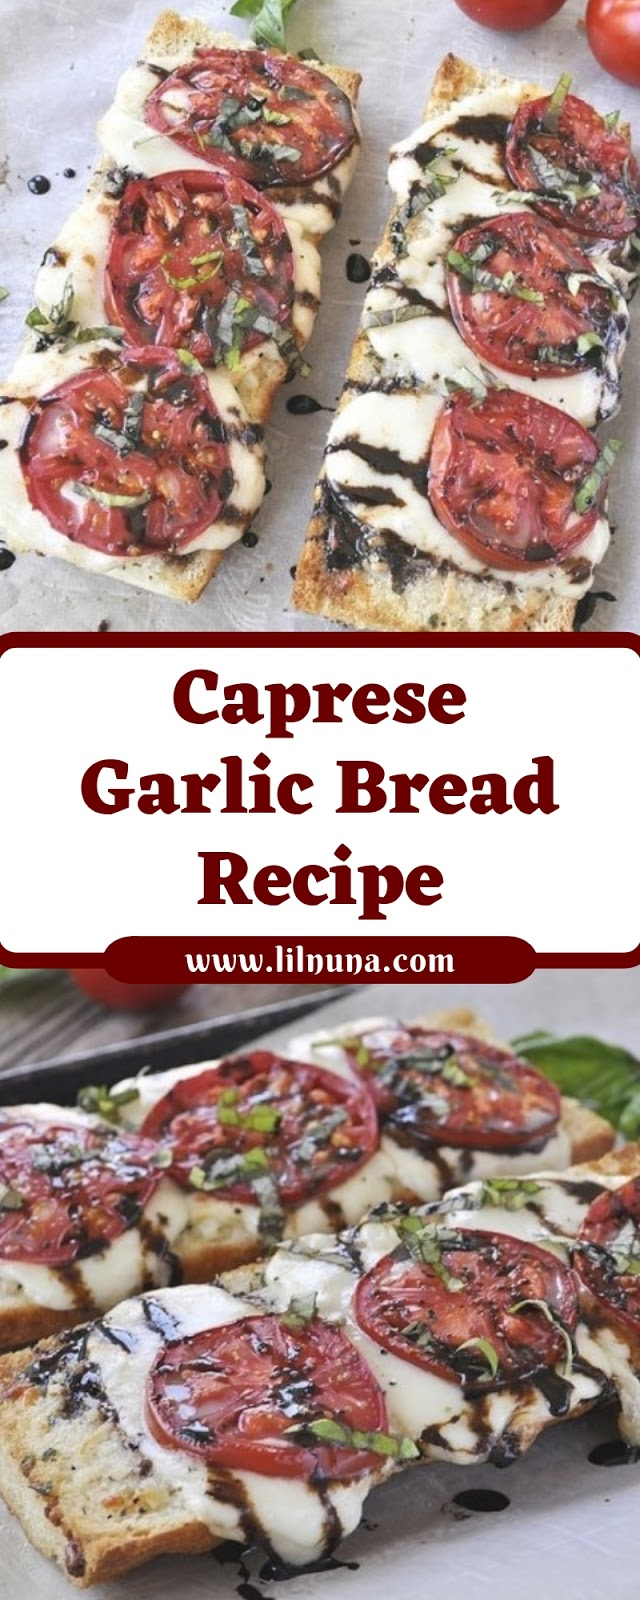 Caprese Garlic Bread Recipe